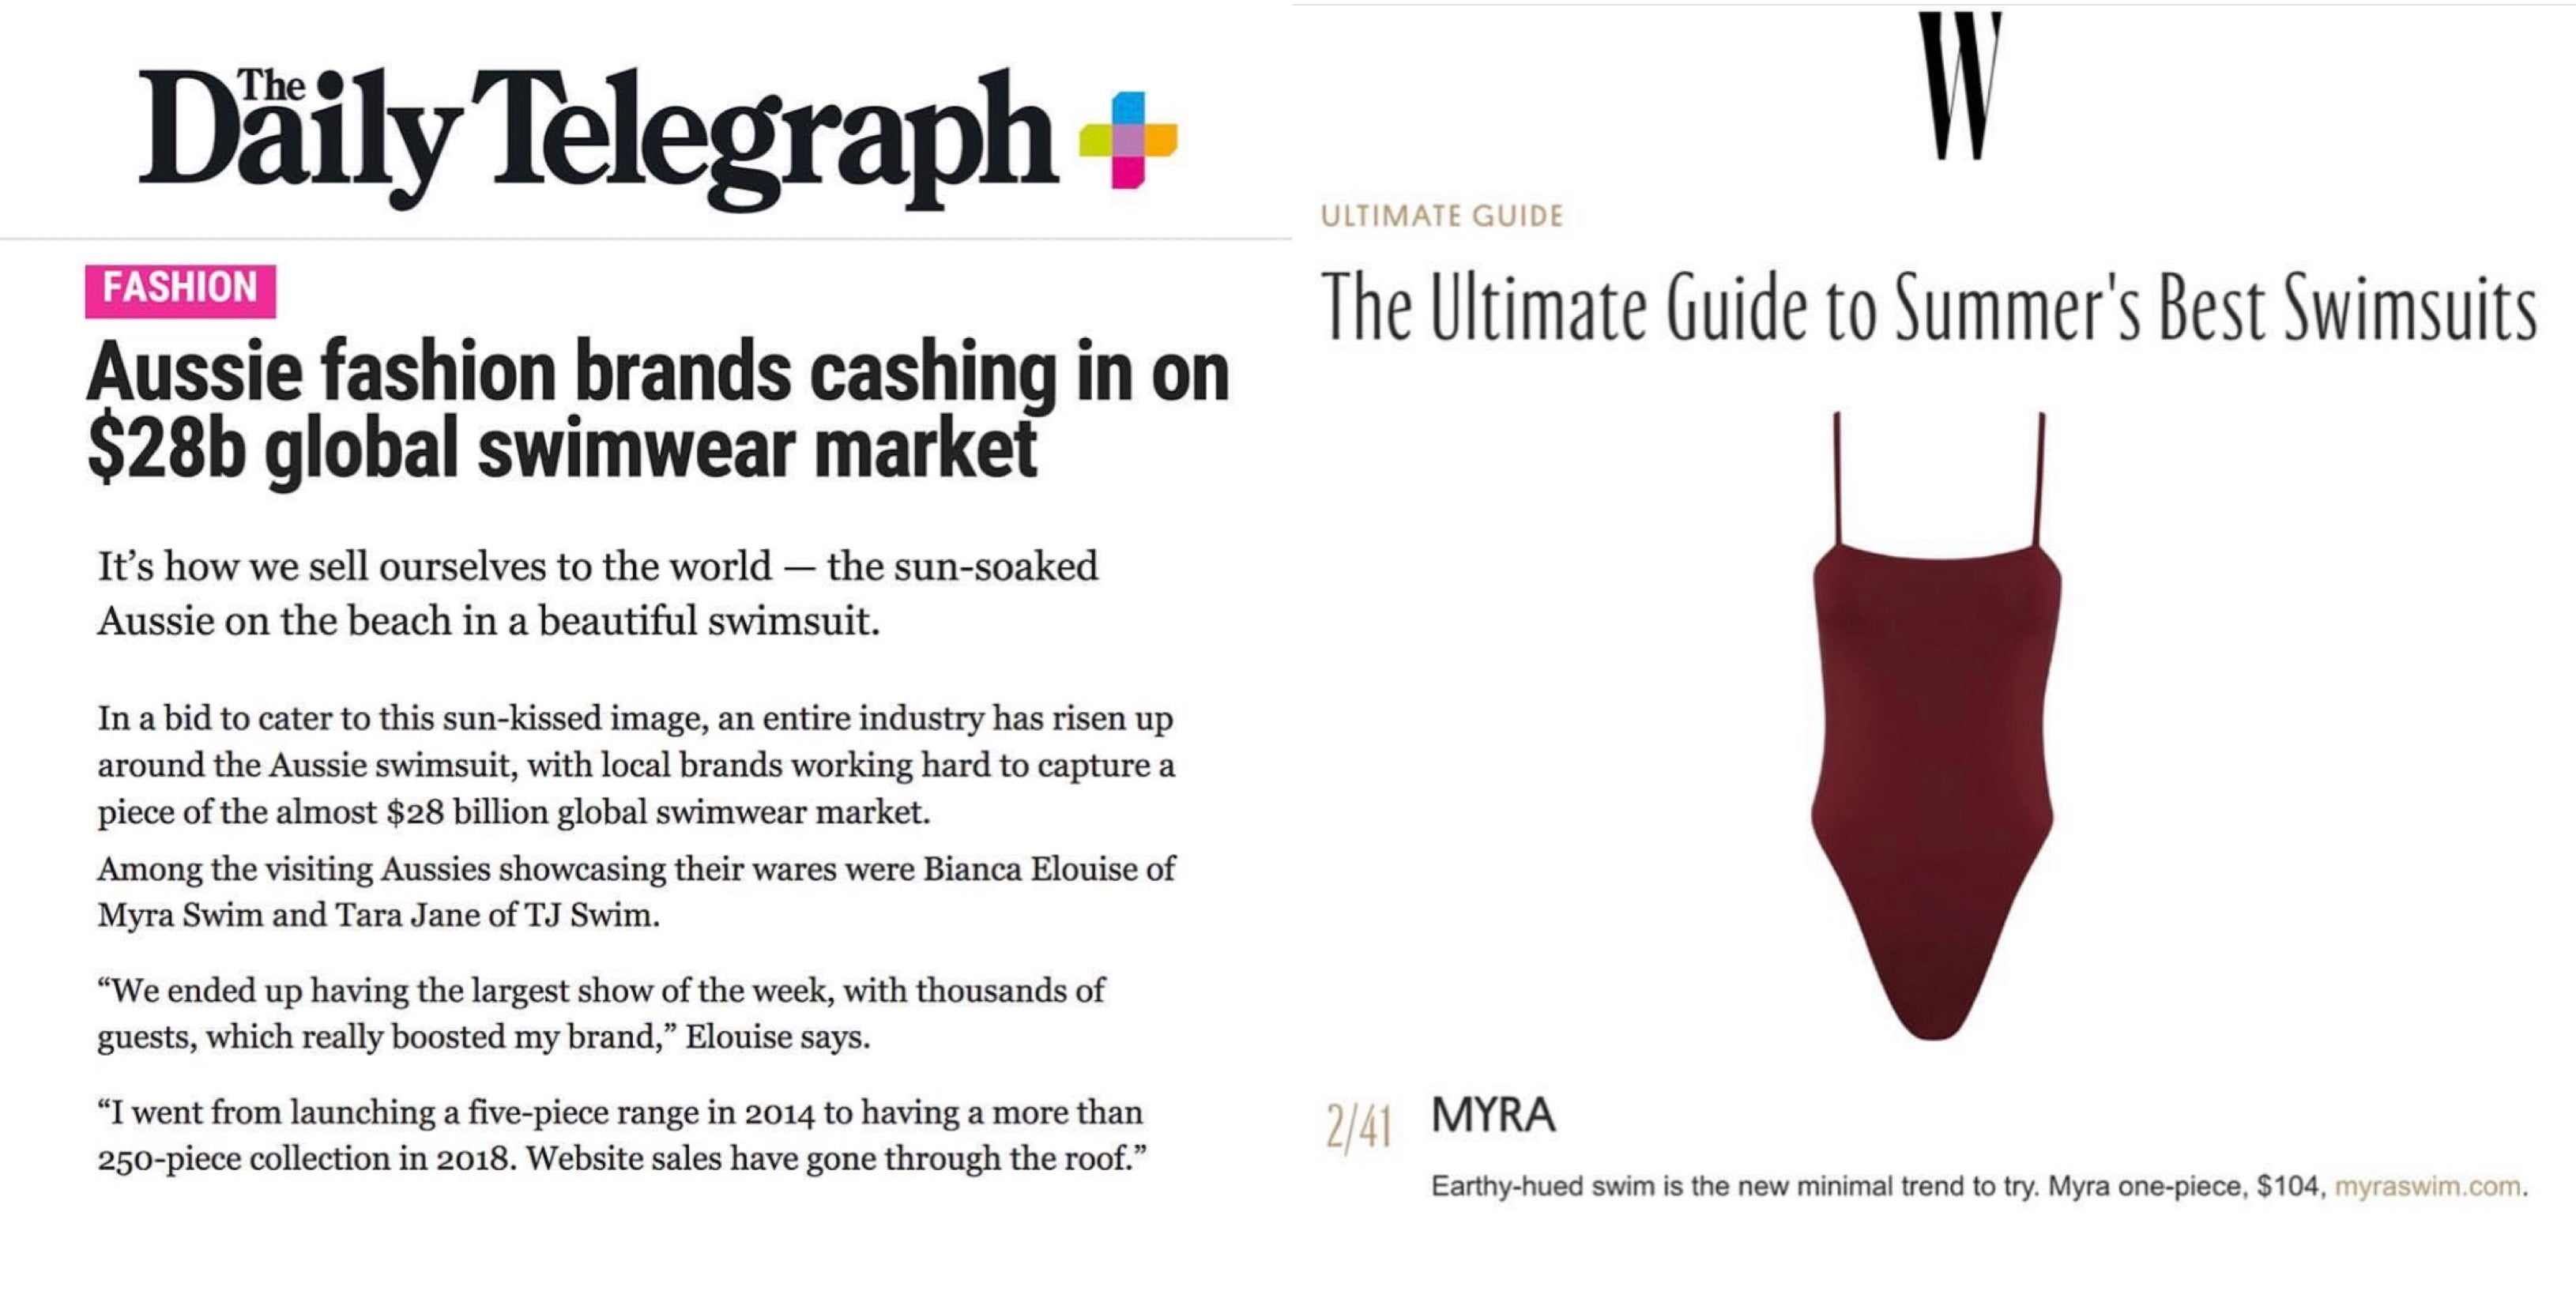 The Daily Telegraph swimsuit